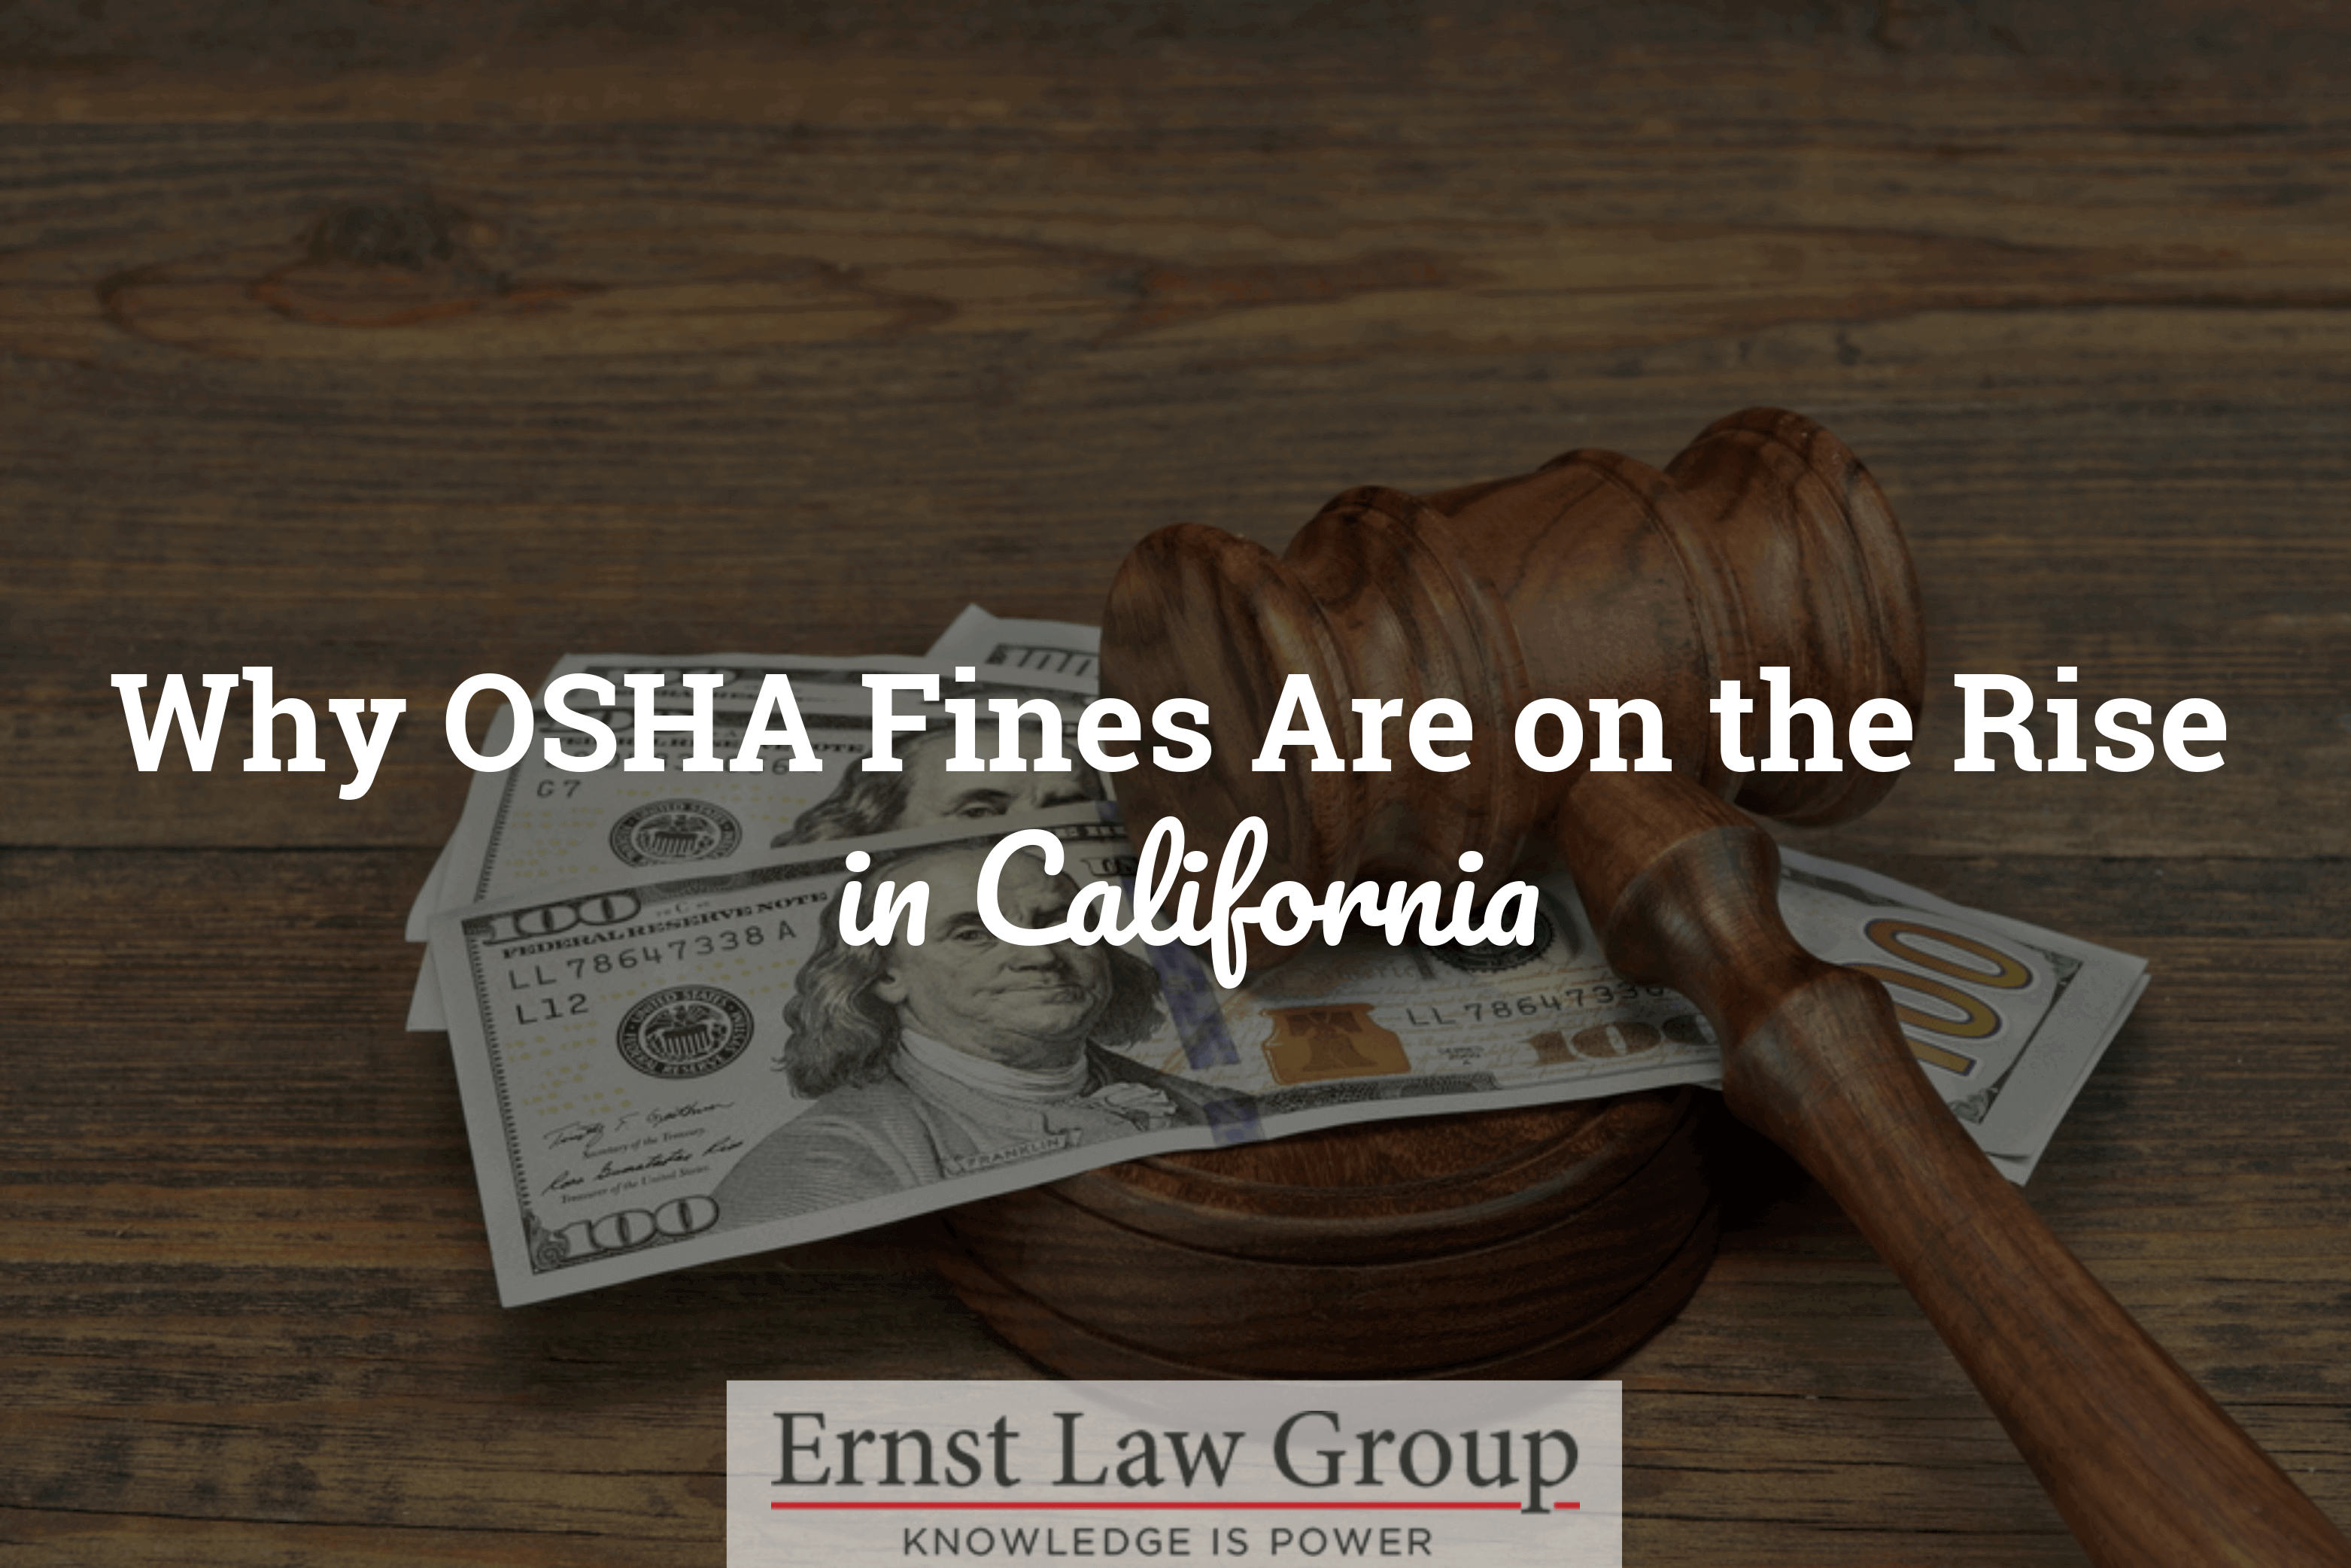 Why OSHA Fines Are on the Rise in California